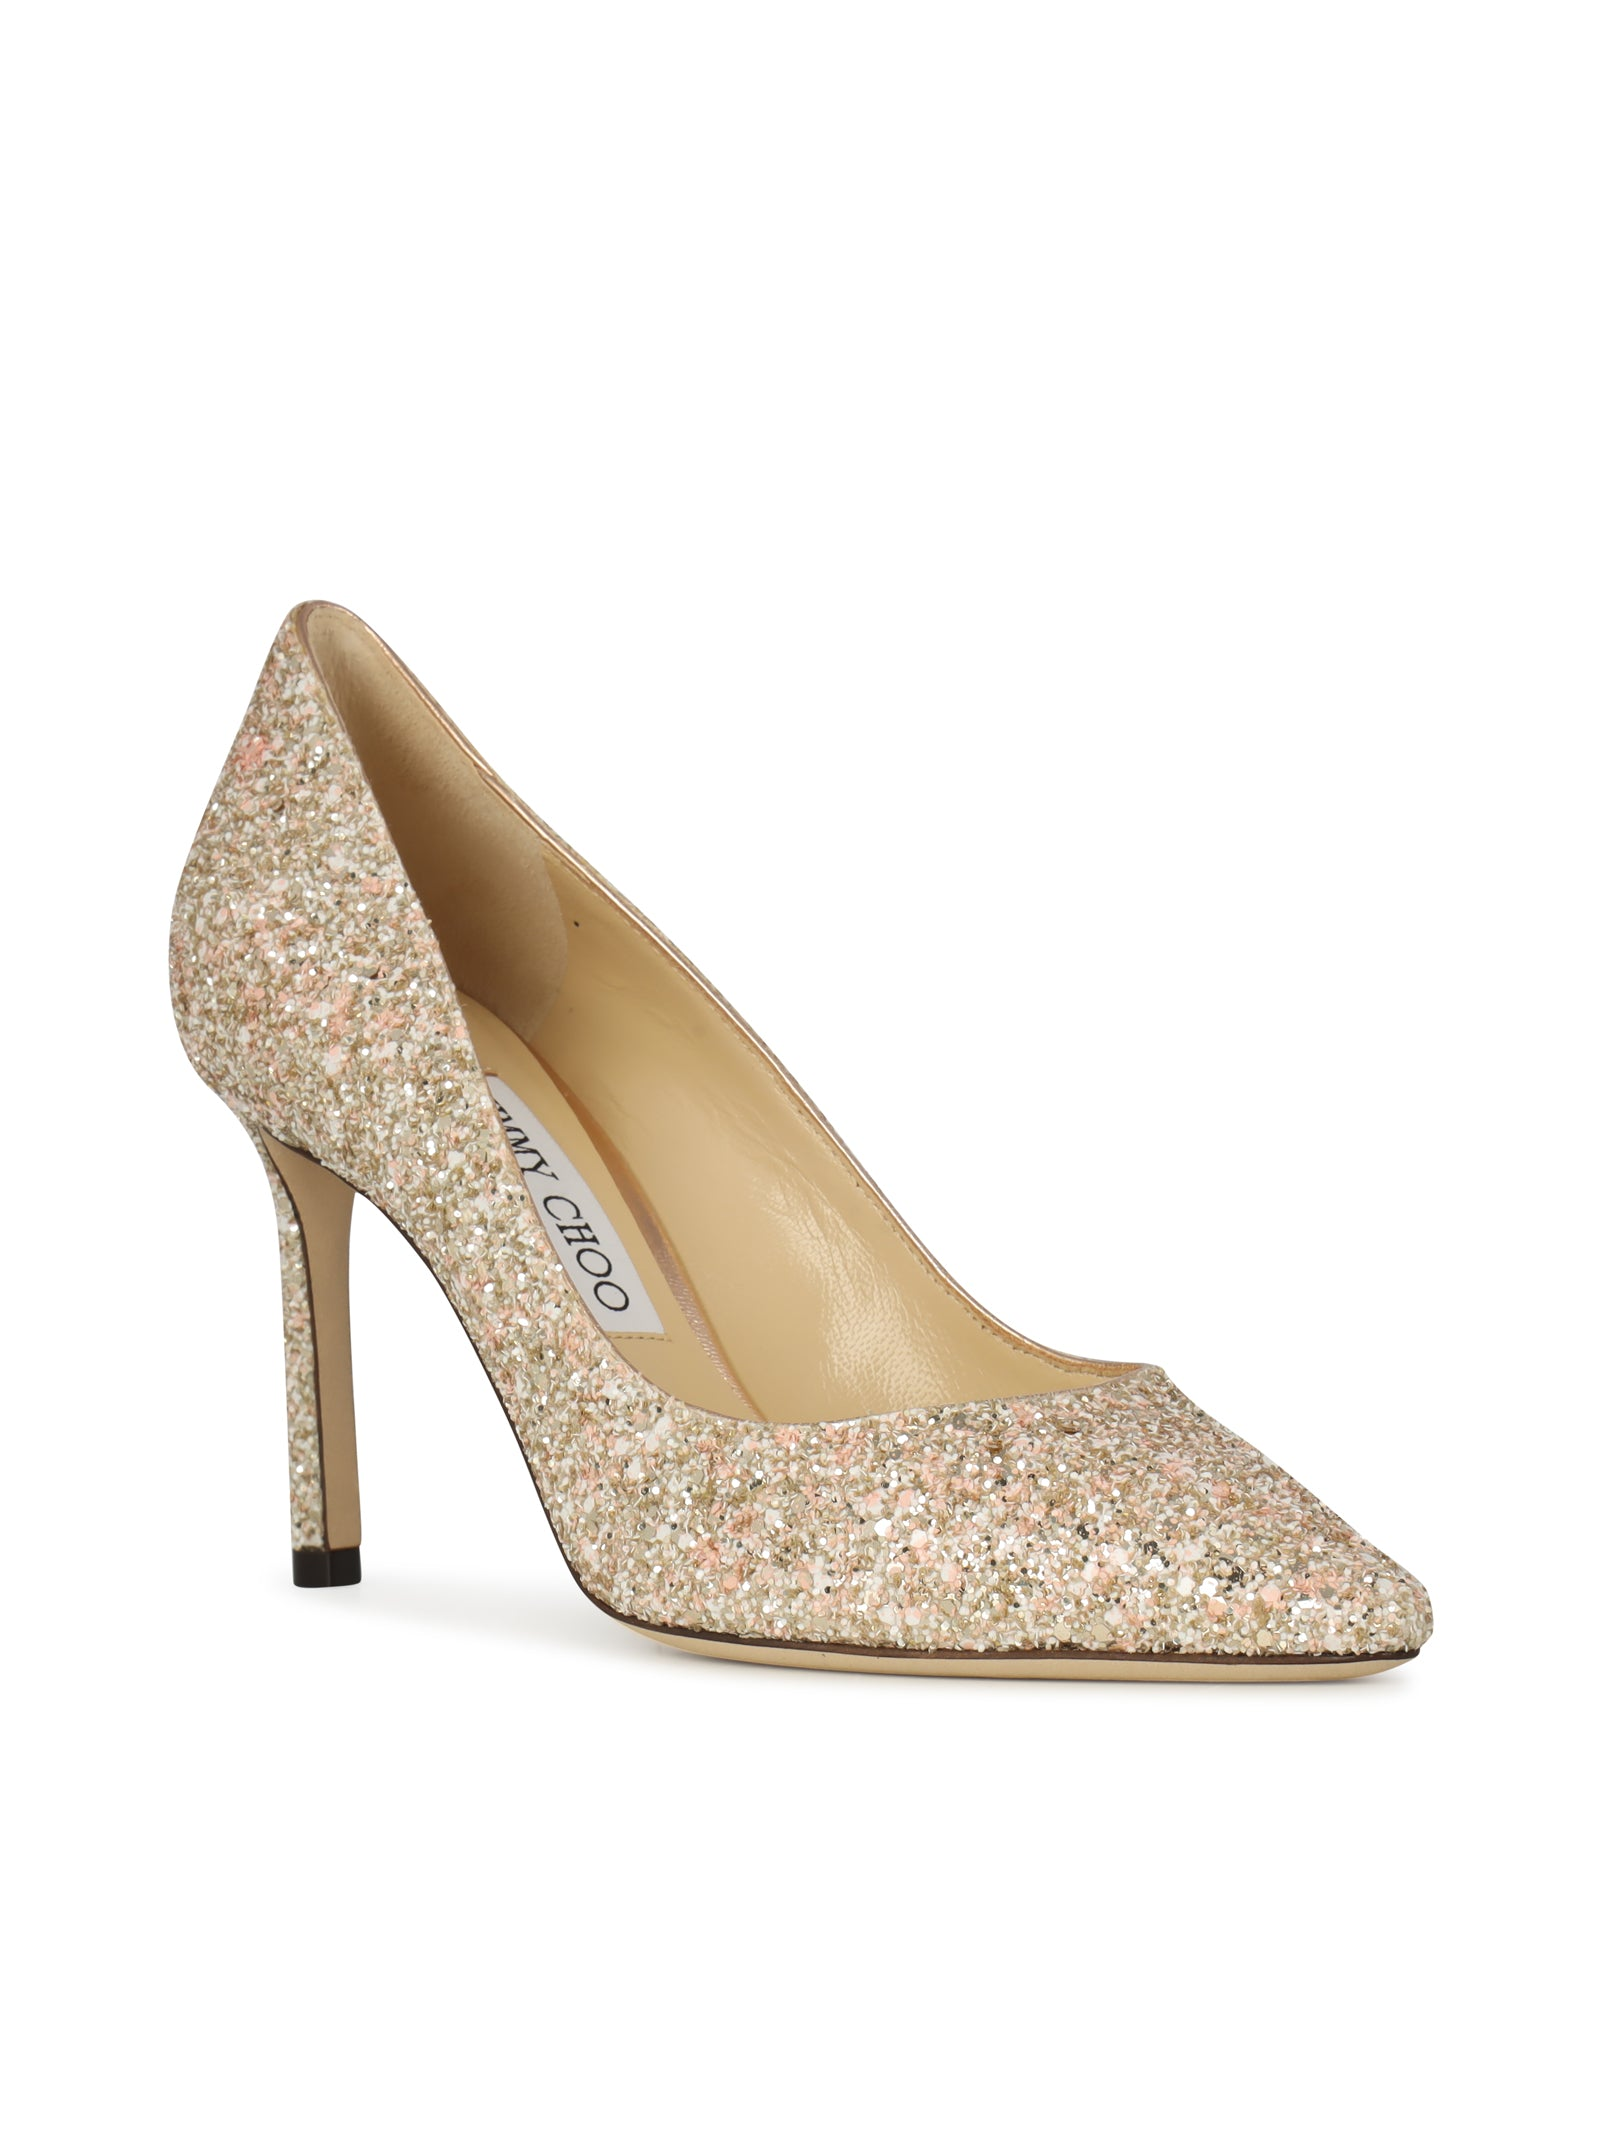 Romy 85mm glitter-embellished pumps